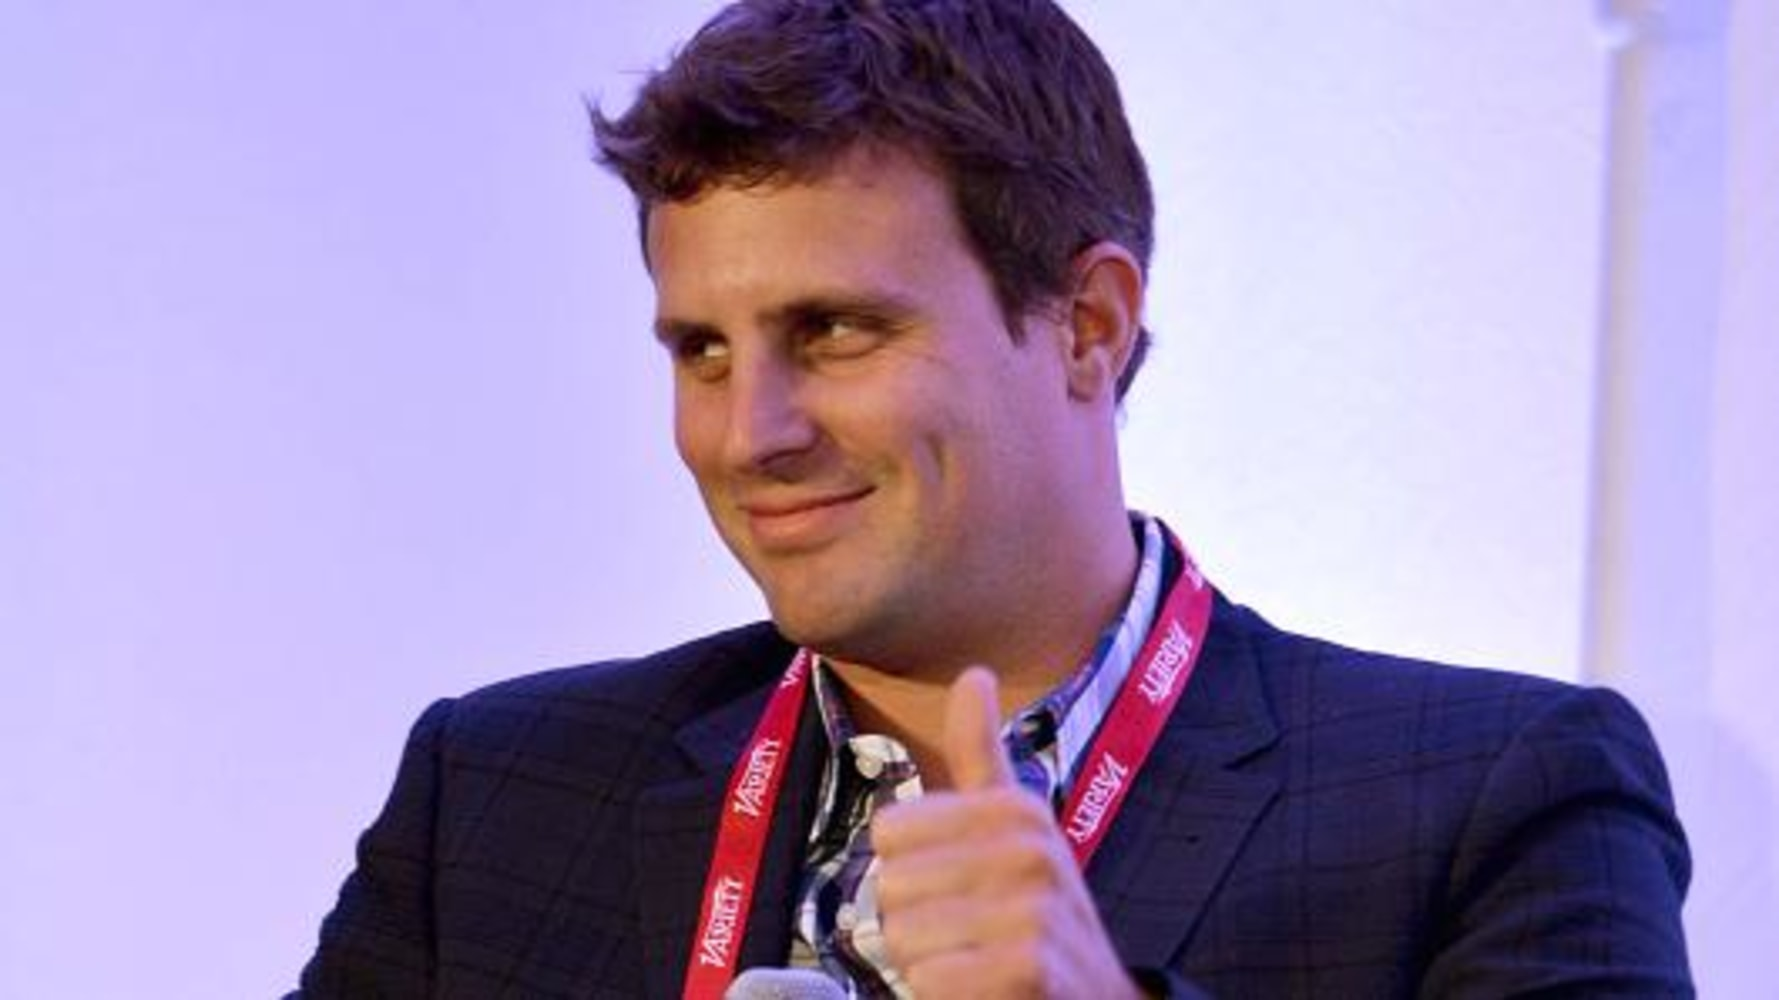 Dollar Shave Club to become part of Unilever